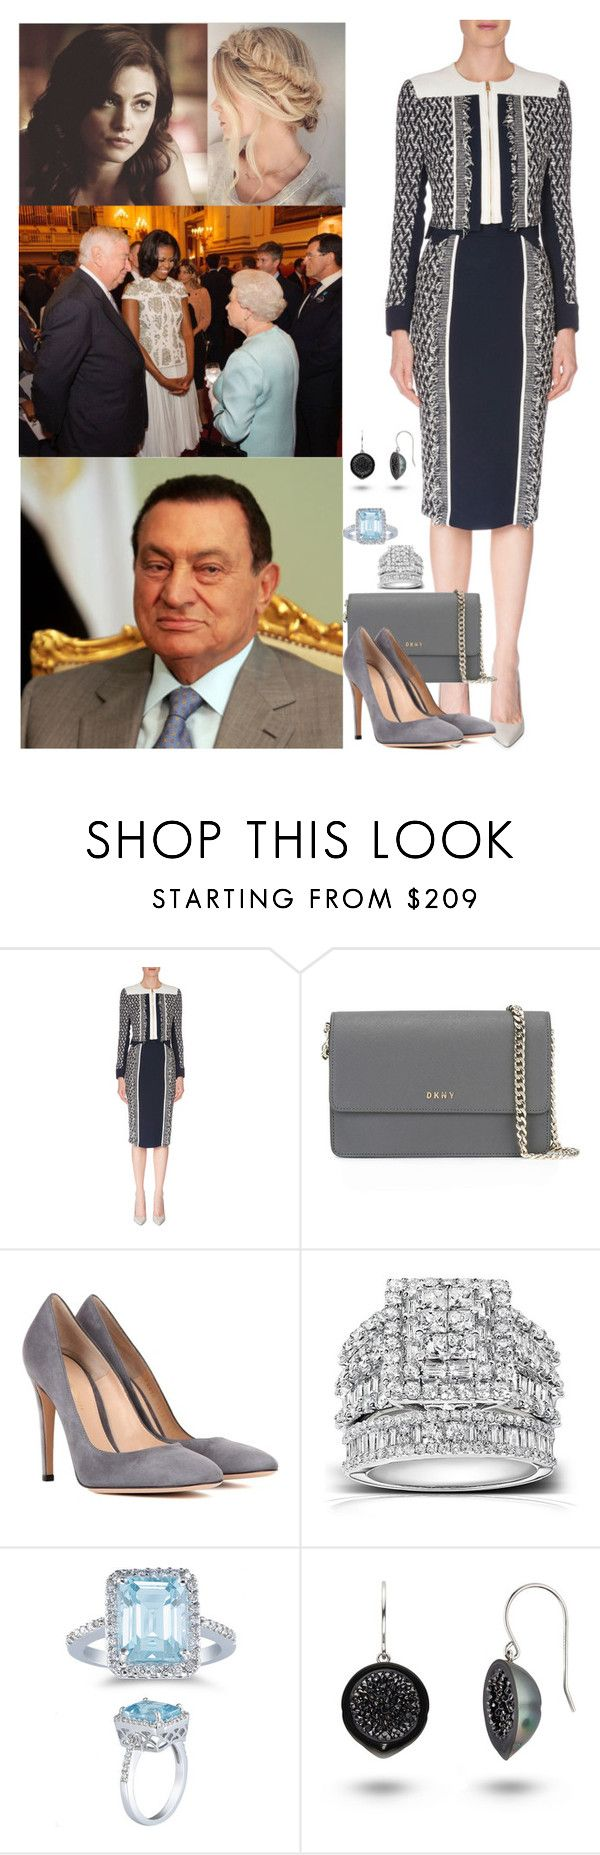 """""""ROYAL TOUR #19: Egypt Day 3, Meeting with Egypt's President, Hosni Mubarak"""" by hrh-princess ❤ liked on Polyvore featuring Roland Mouret, DKNY, Gianvito Rossi, Kobelli and Apples of Gold"""